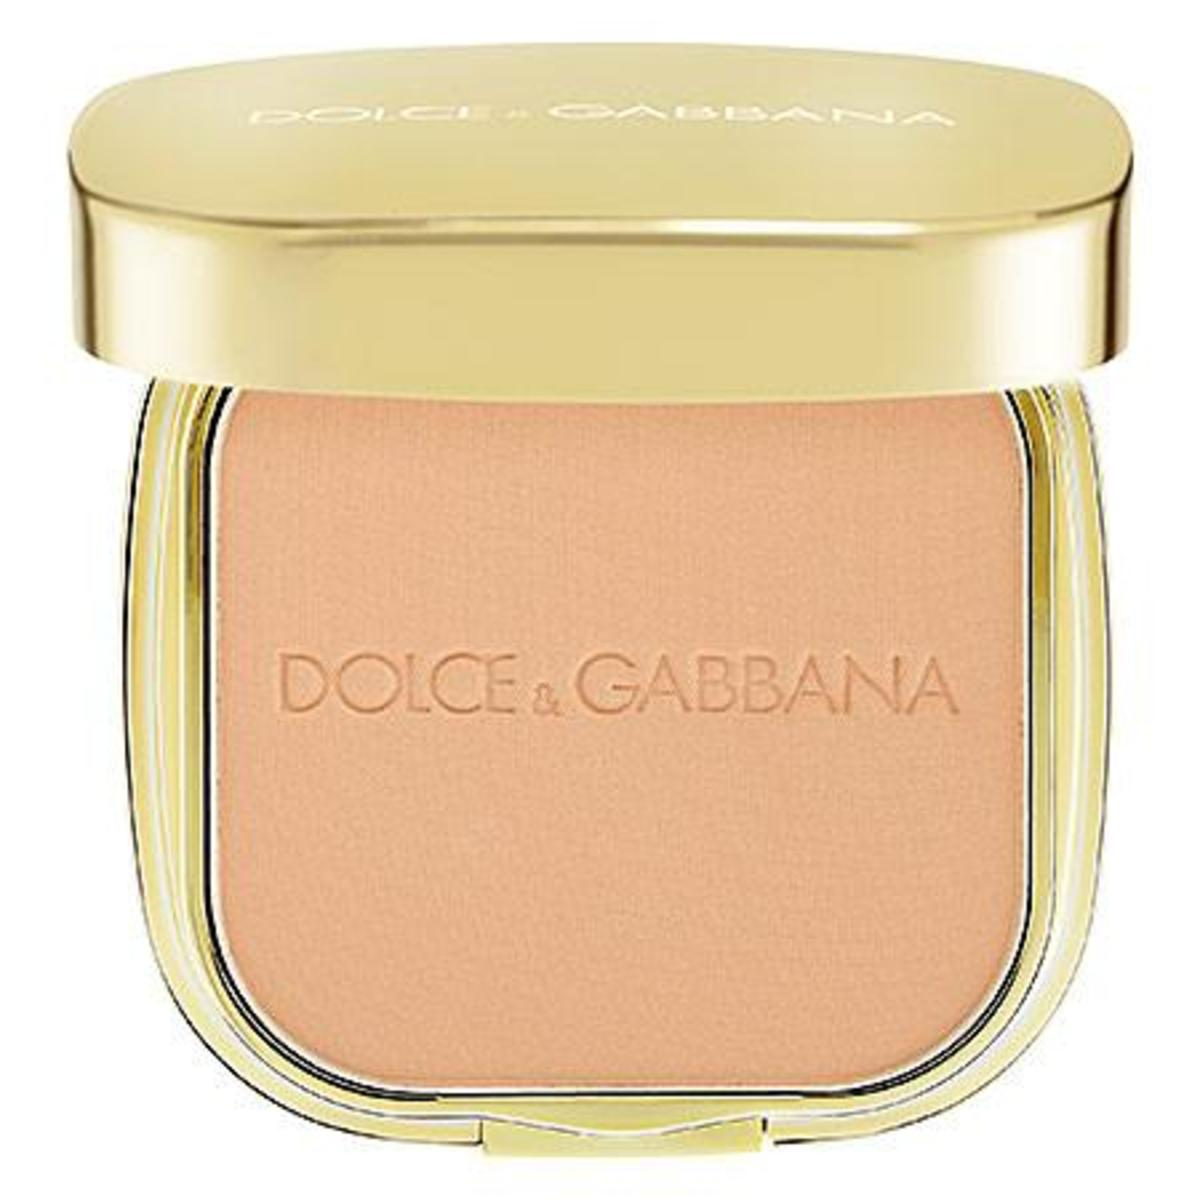 Dolce & Gabbana The Foundation Perfect Finish Powder Foundation in Creamy 80